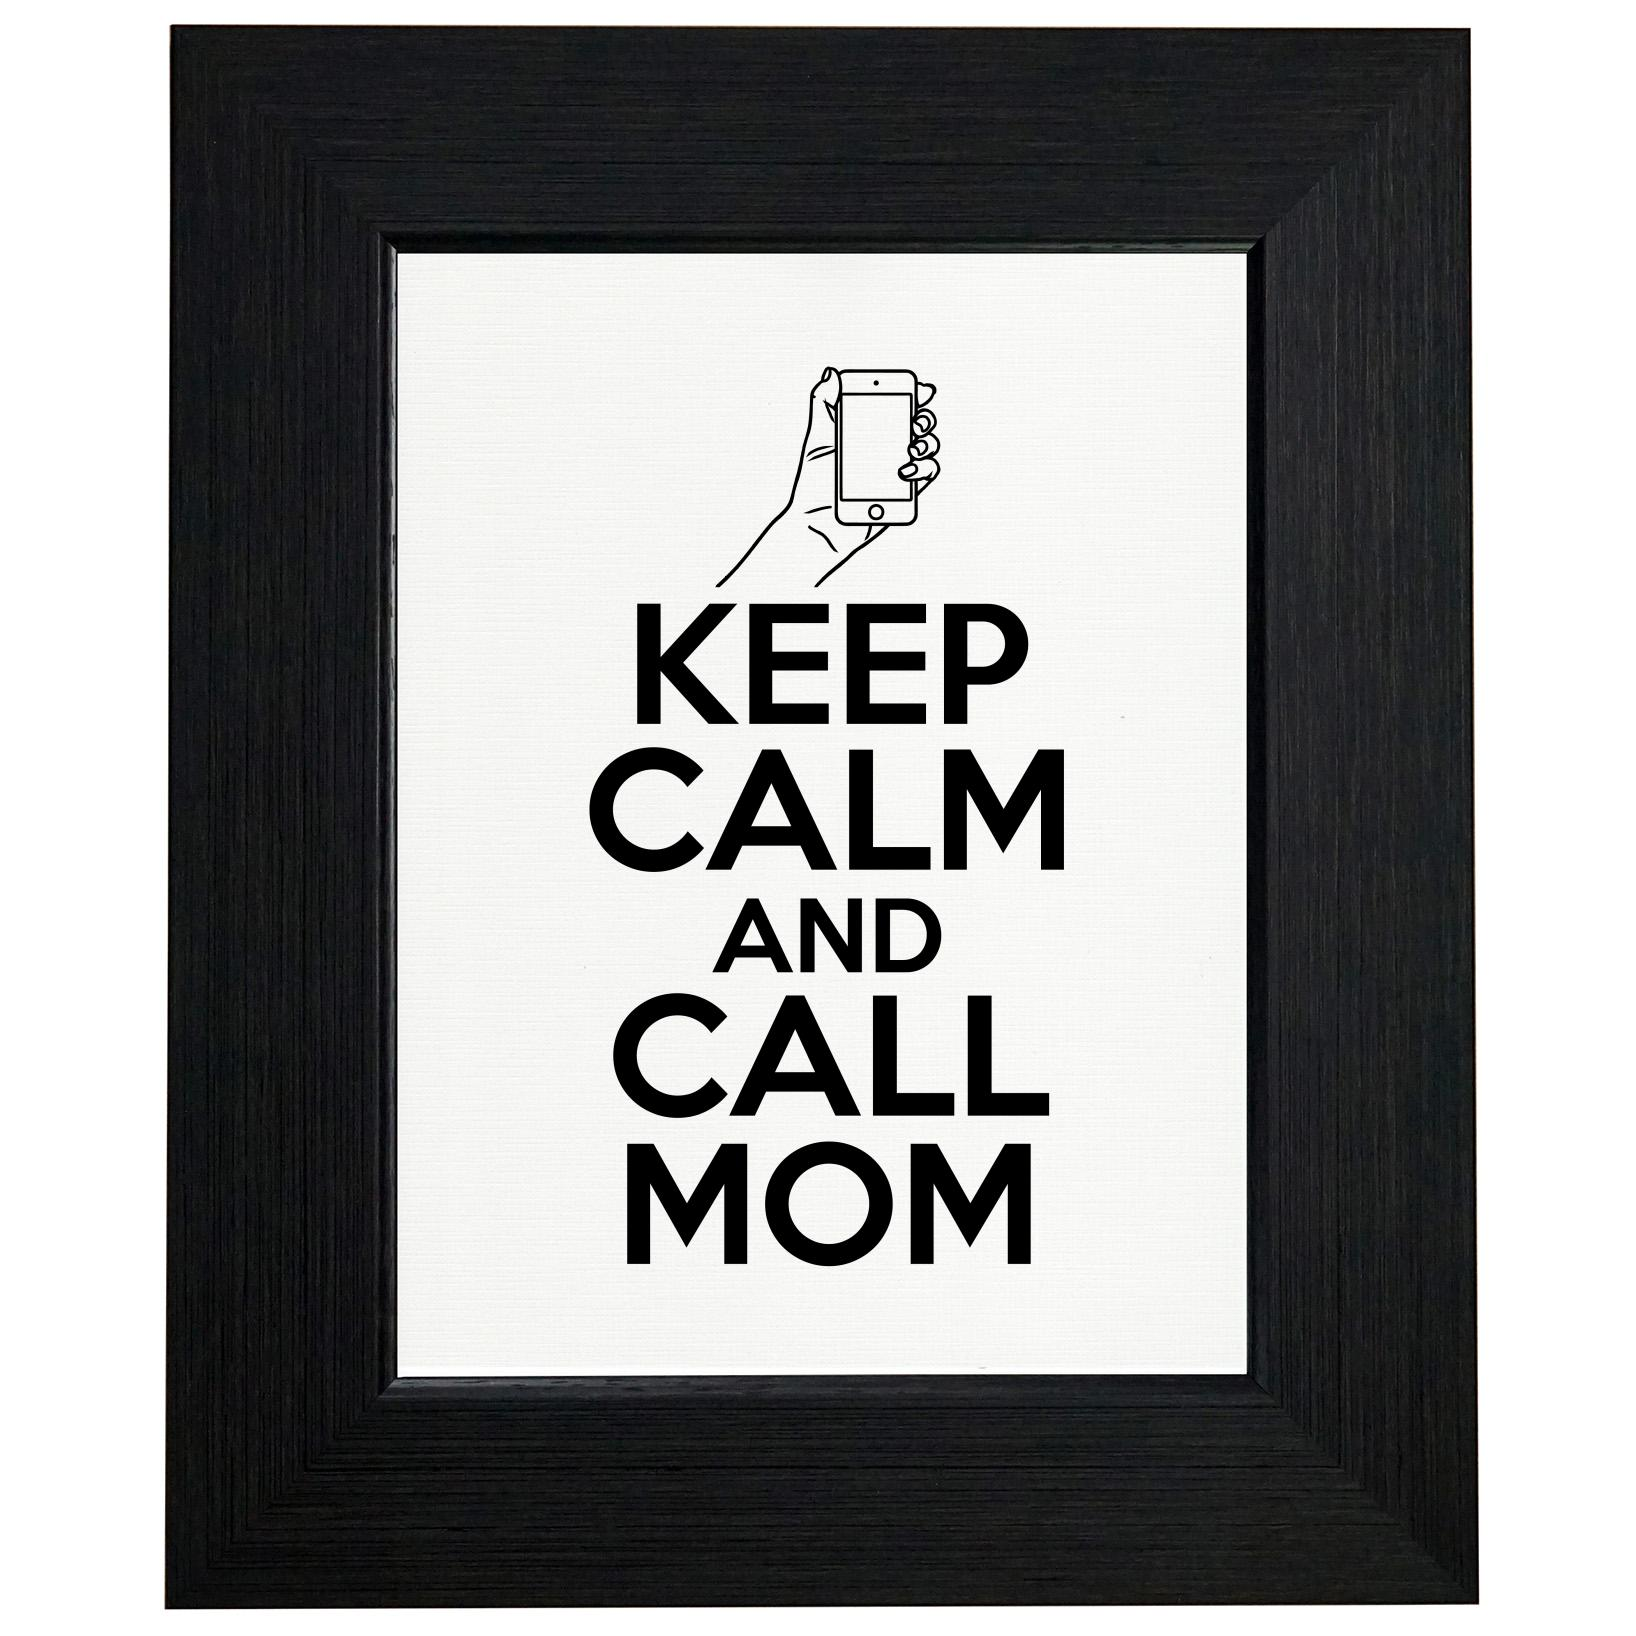 Keep Calm & Call Mom - College Funny Phone Framed Print Poster Wall or Desk Mount Options